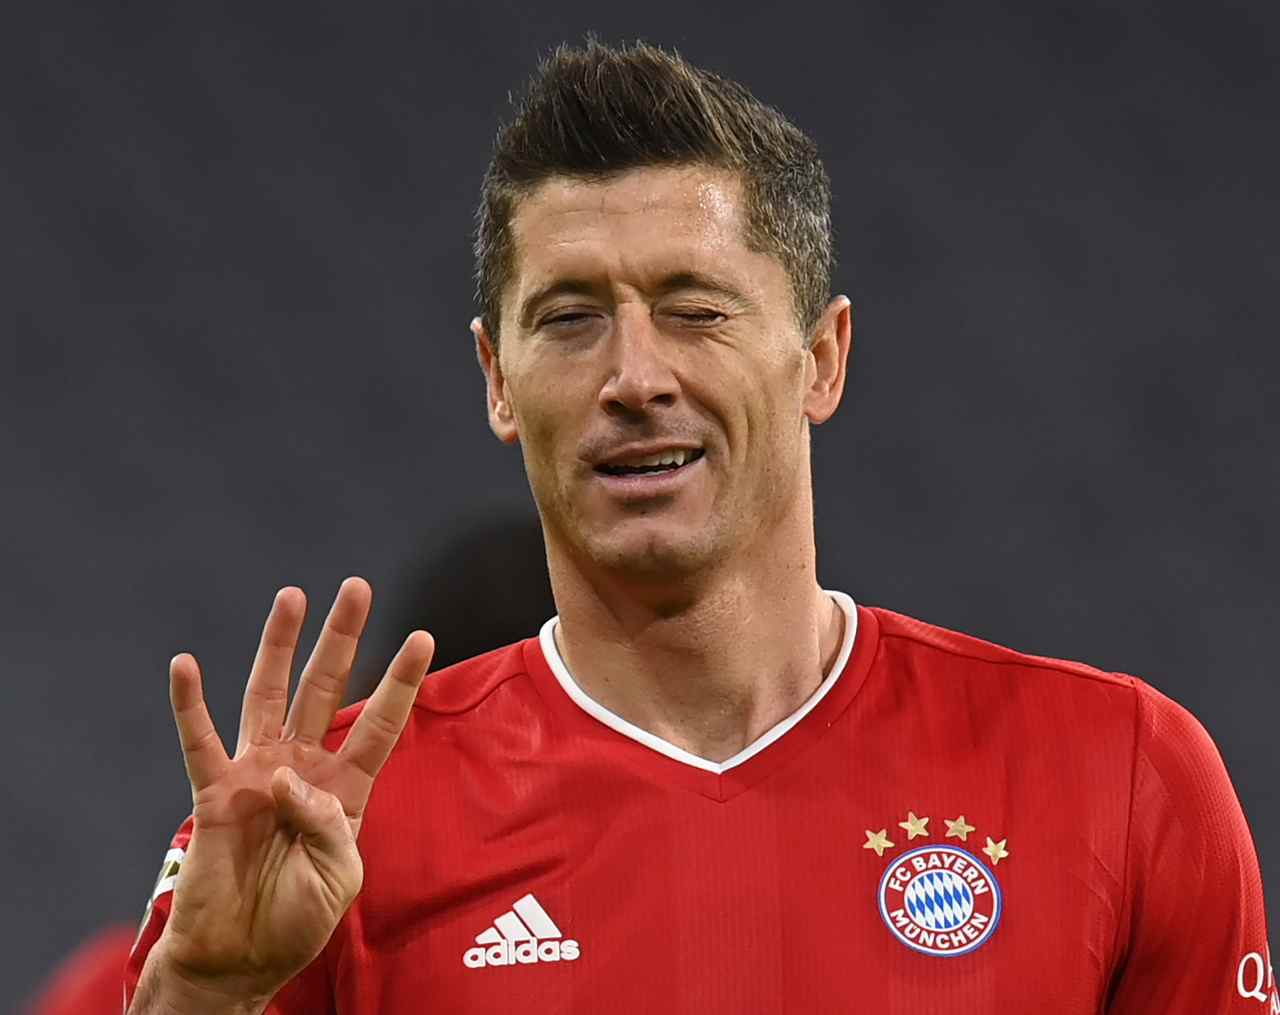 Migliori goleador d'Europa, Lewandowski in testa alla classifica (Getty Images)